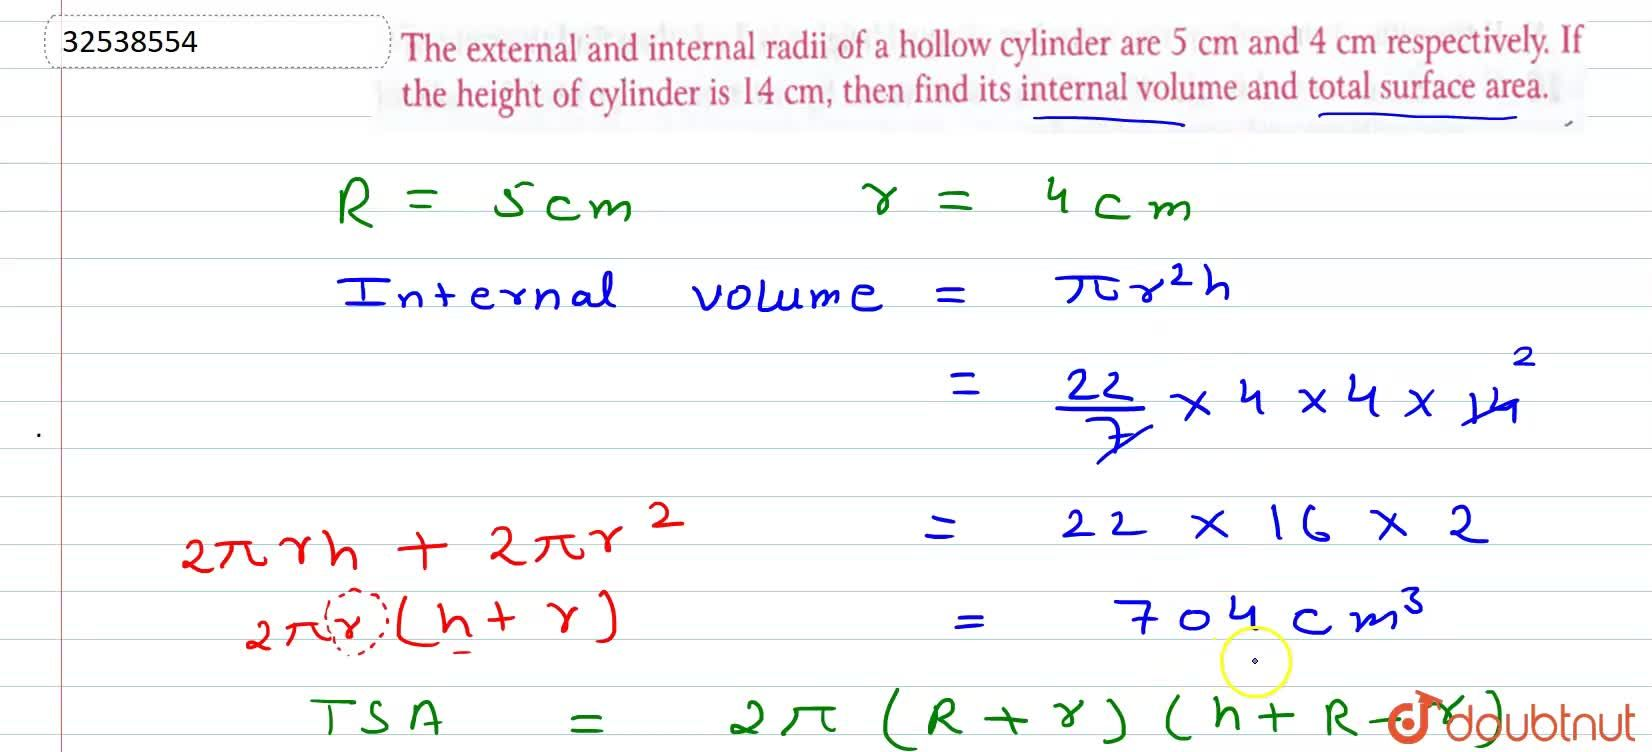 The external  and internal radii of a hollow cylinder are 5 cm and 4 cm respectively. If the height of cylinder is 14 cm, then find its internal volume and total surface area.